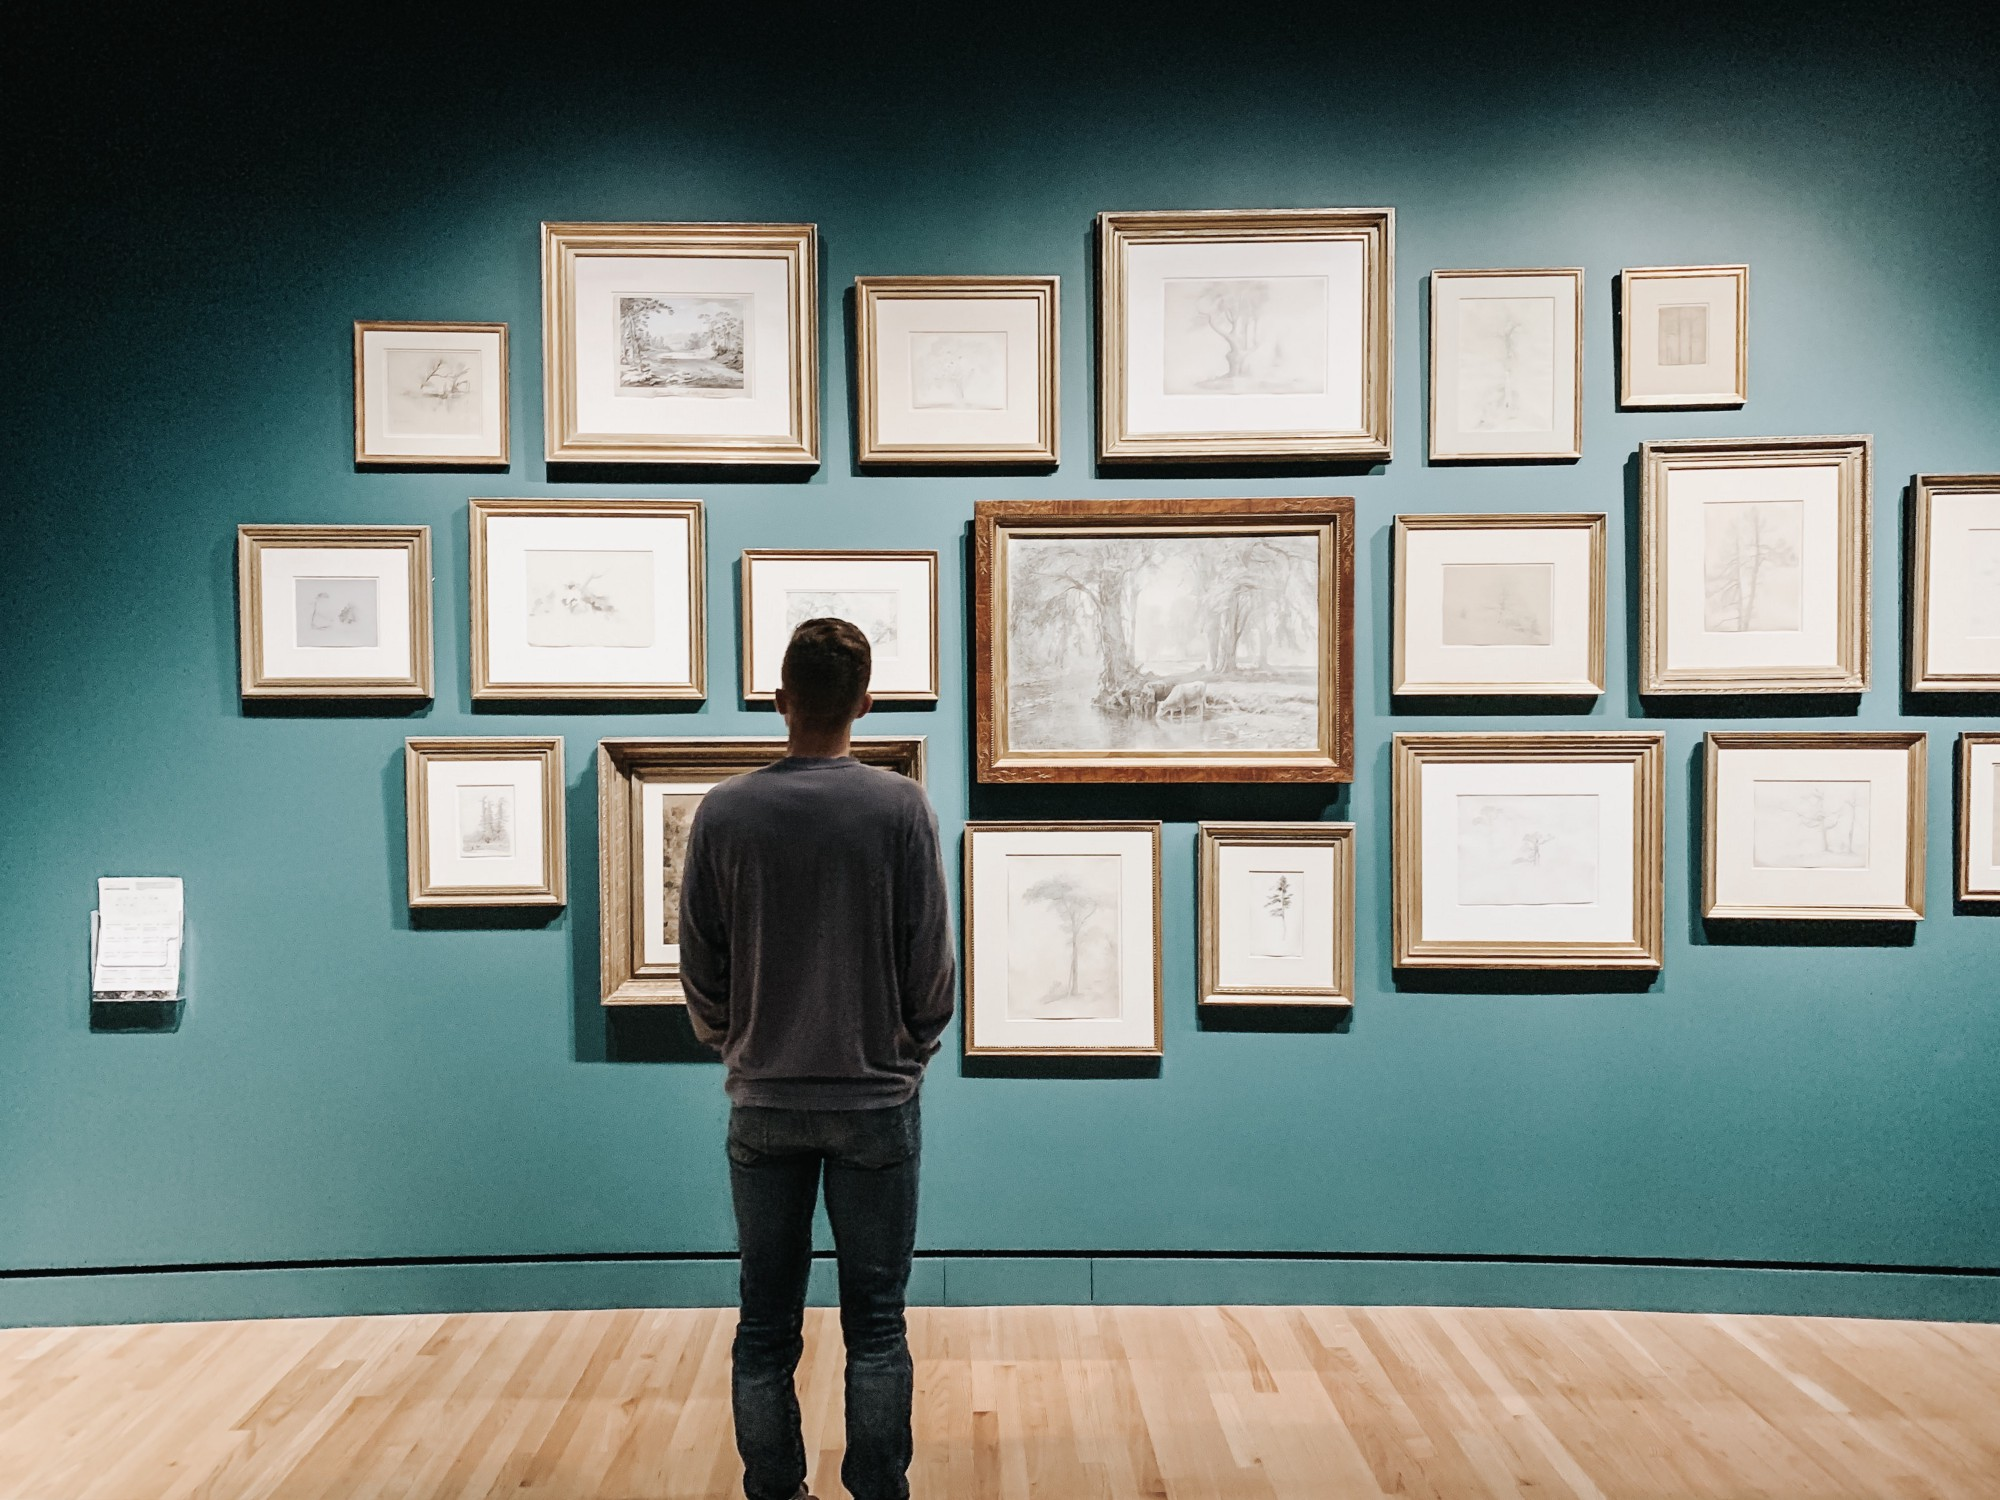 Man looking at framed artworks on a wall.